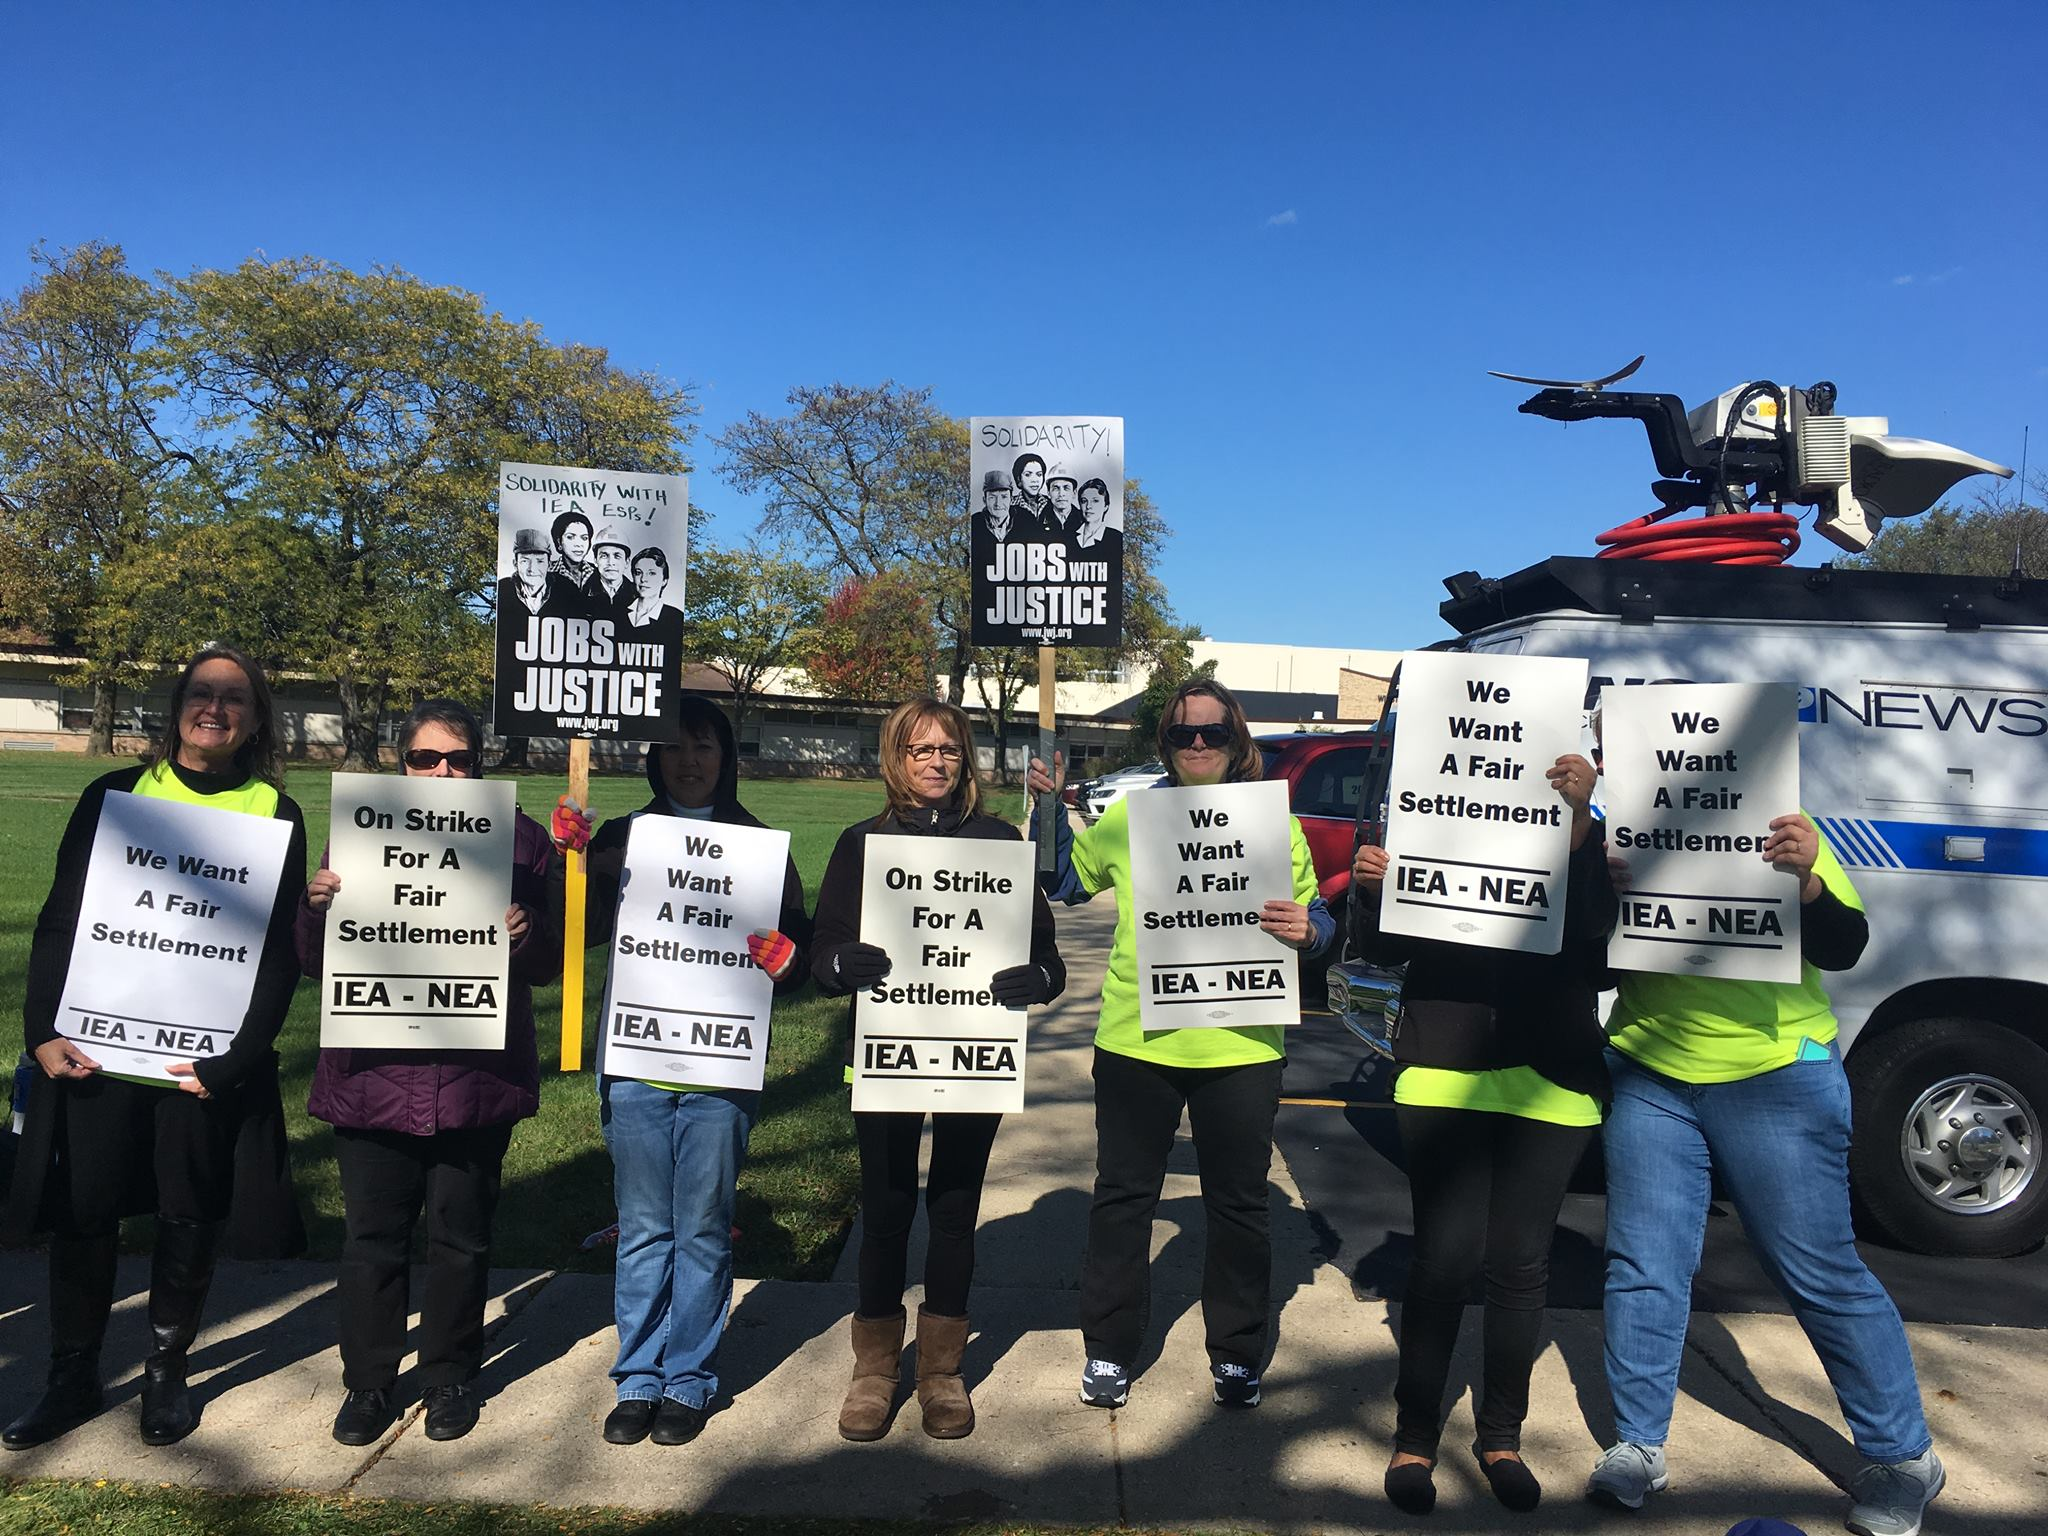 Solidarity support on the picket line with IEA esps in Palatine, IL. October 2017.